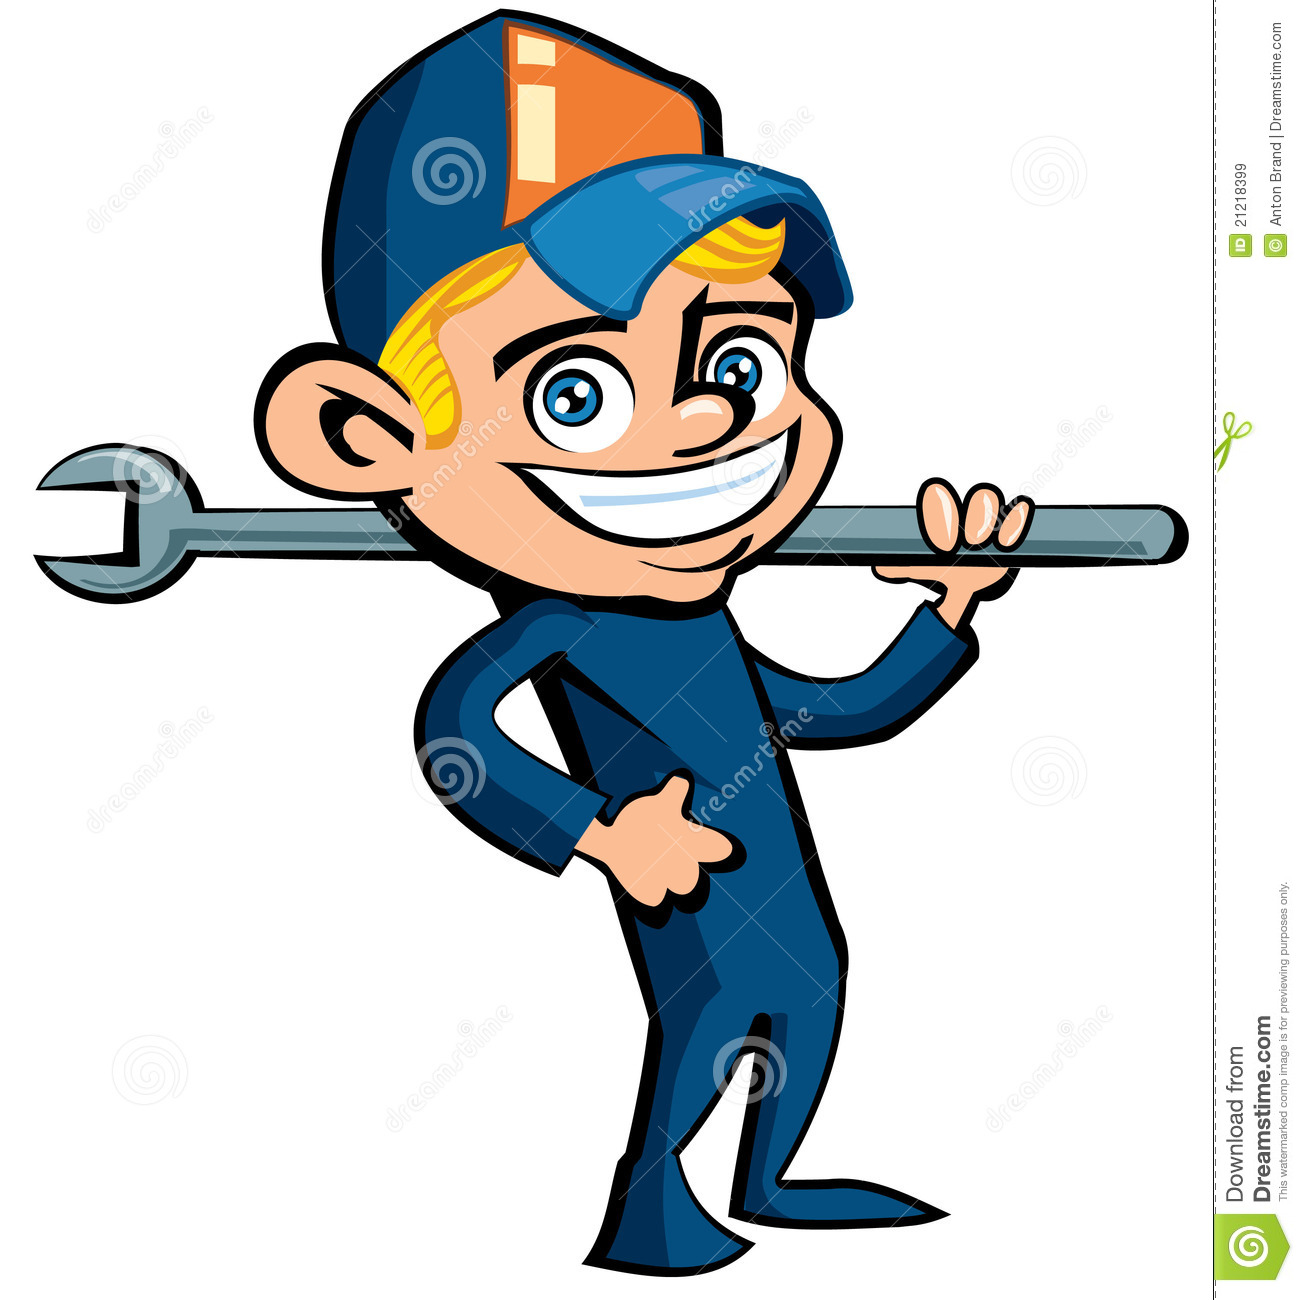 Cute Cartoon Plumber Holding A Tool Royalty Free Stock